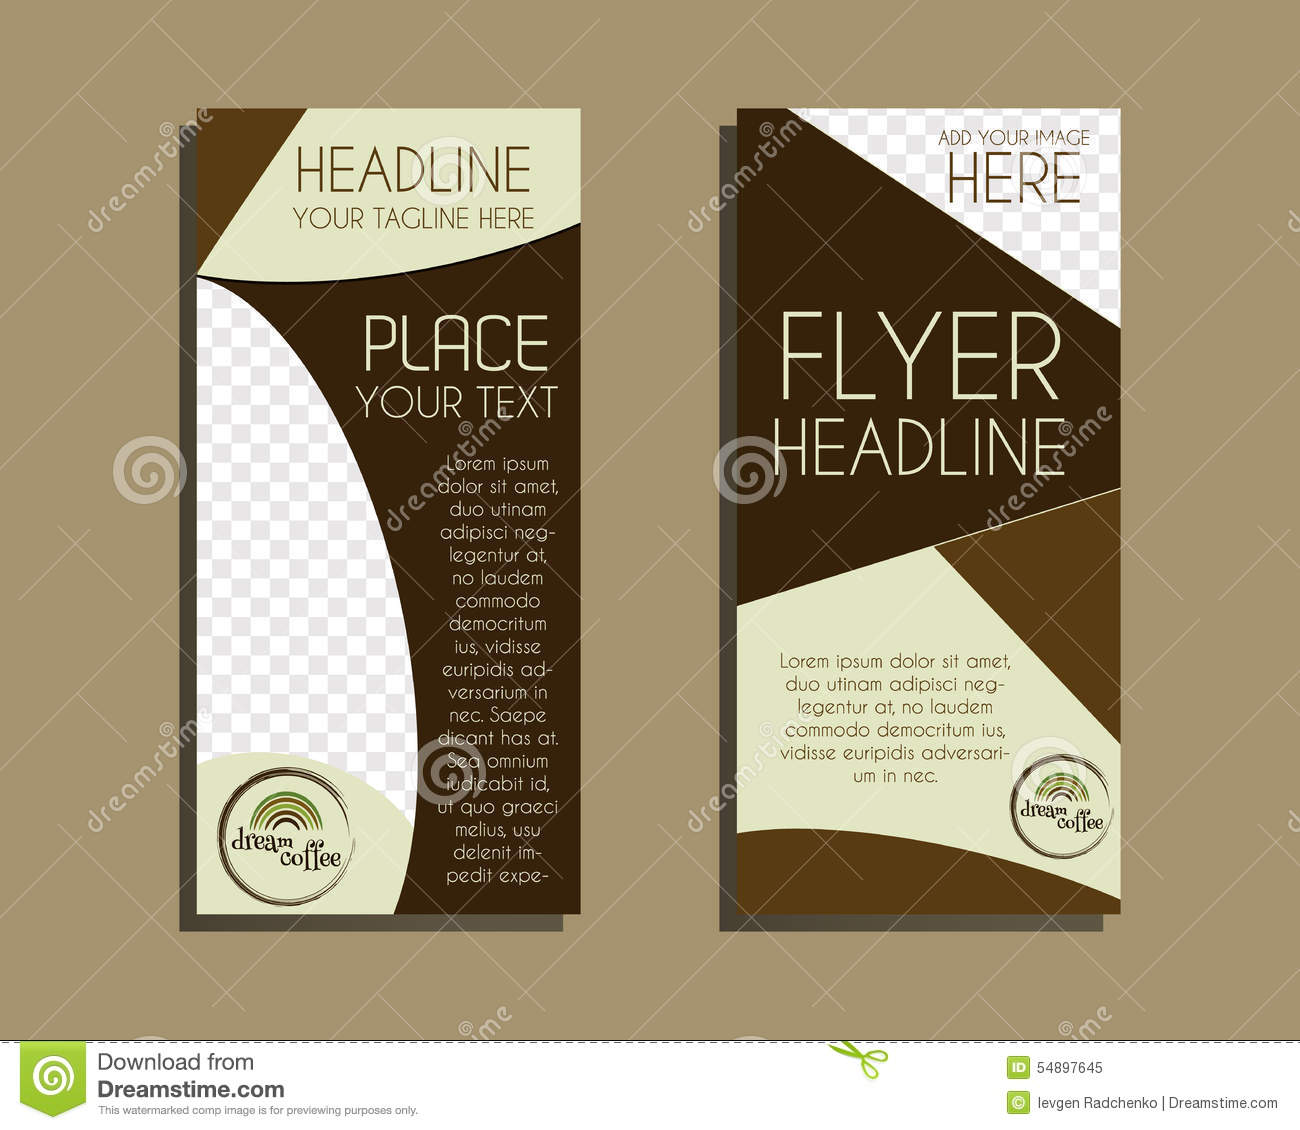 coffee house template brochure or flyer design stock photo coffee brochure flyer design layout template royalty stock photo